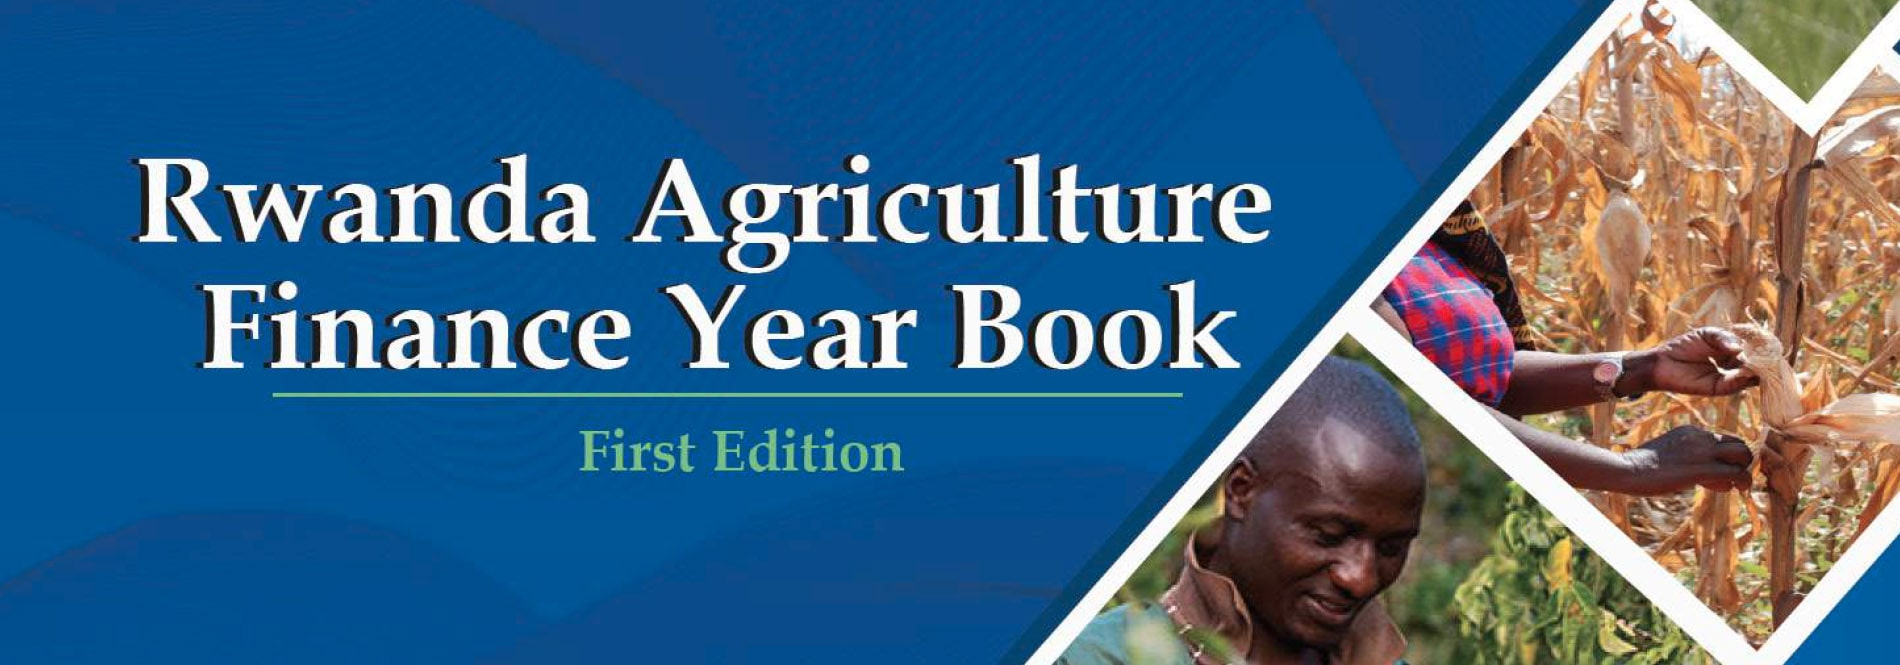 Rwanda Agriculture Finance Year Book First Edition